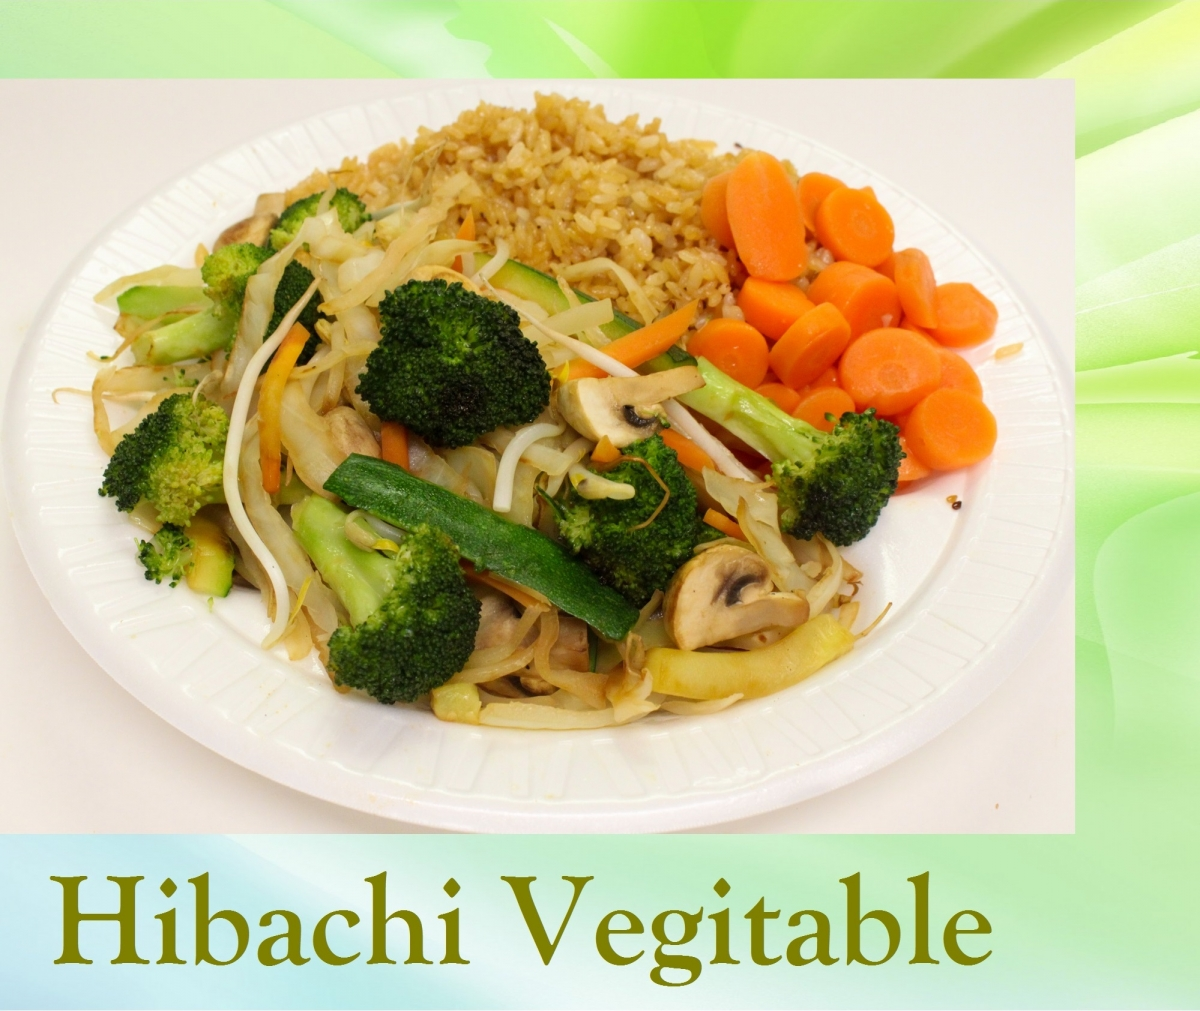 Hibachi Vegitable